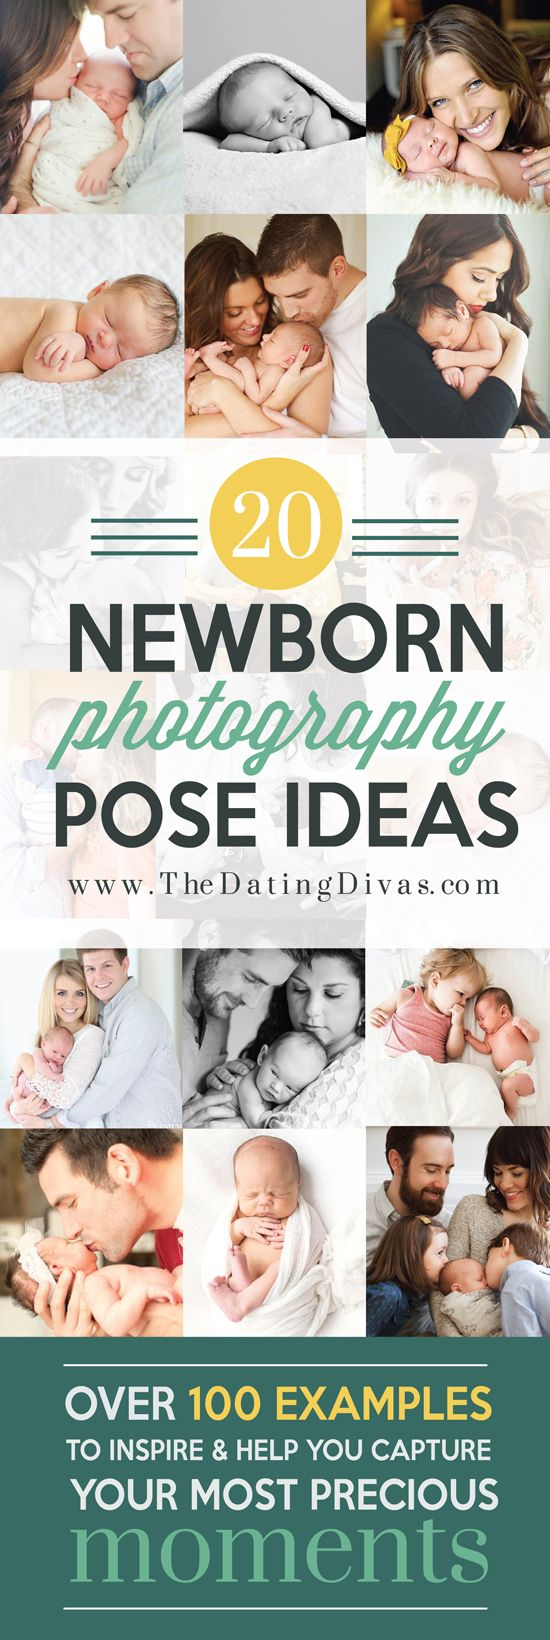 20 Adorable Newborn Photography Pose Ideas